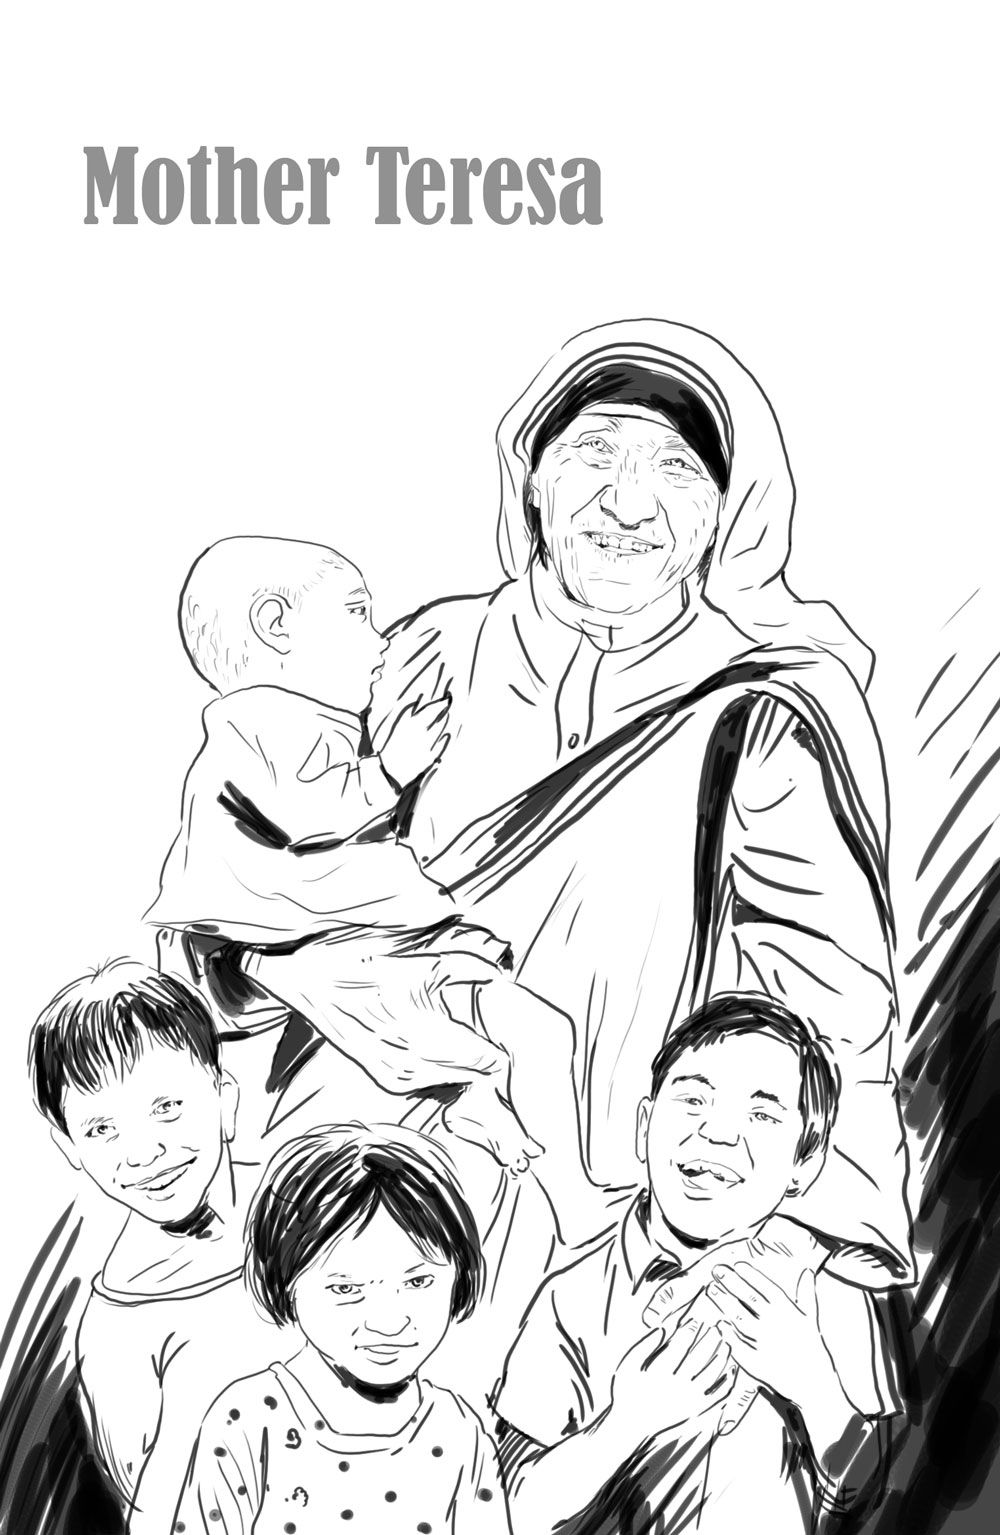 Bp Blogspot Com Mother Teresa With Children Coloring Page Mother Teresa Jesus Coloring Pages Coloring Pages For Kids